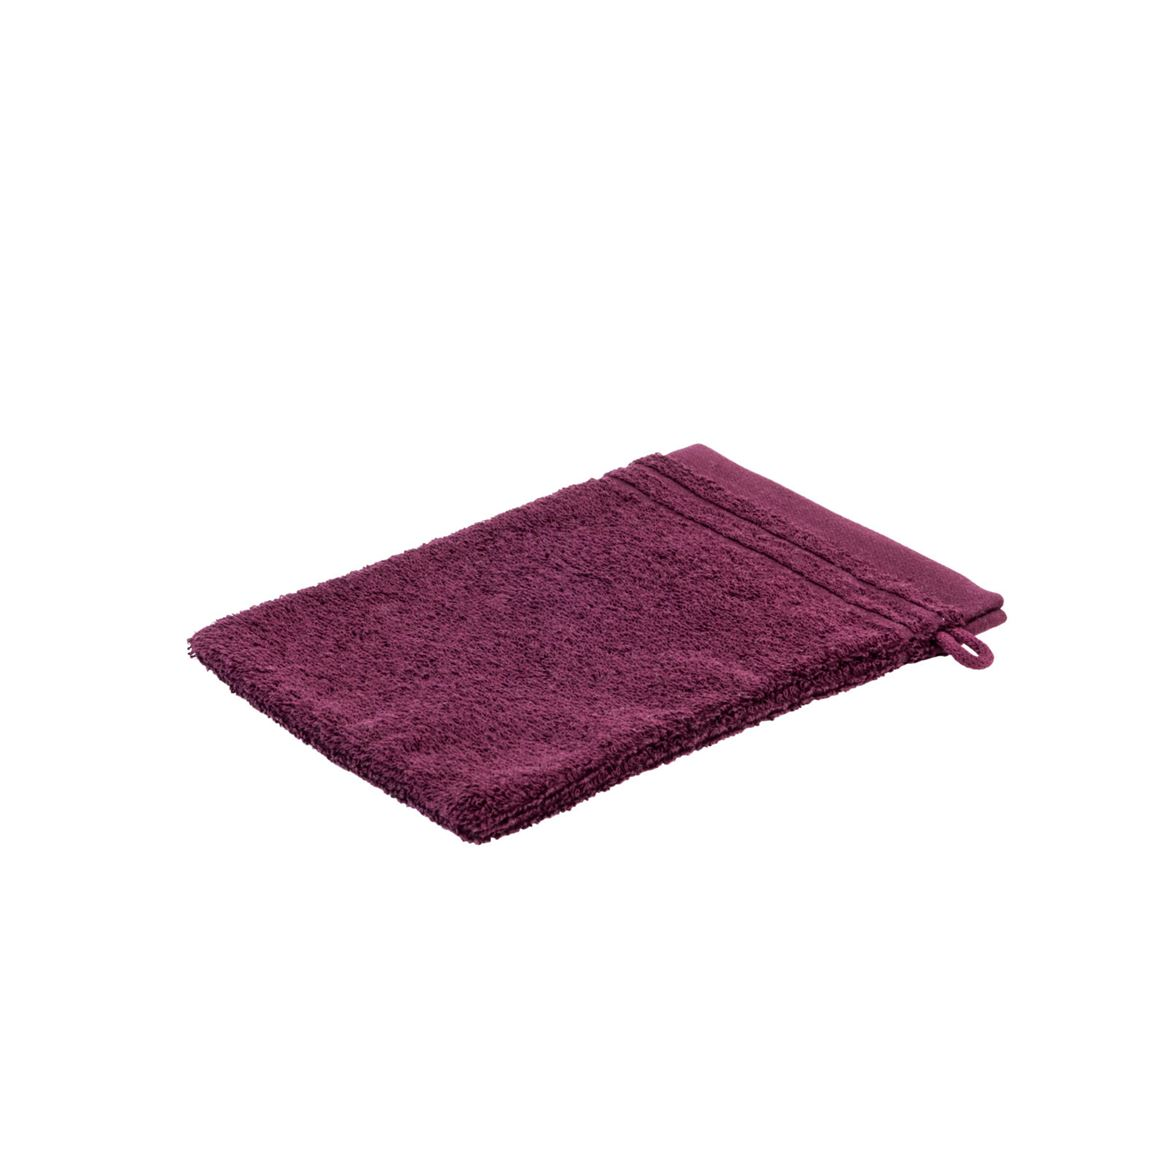 BIO SOFT Gant de toilette bordeaux Larg. 16 x Long. 21 cm_bio-soft-gant-de-toilette-bordeaux-larg--16-x-long--21-cm